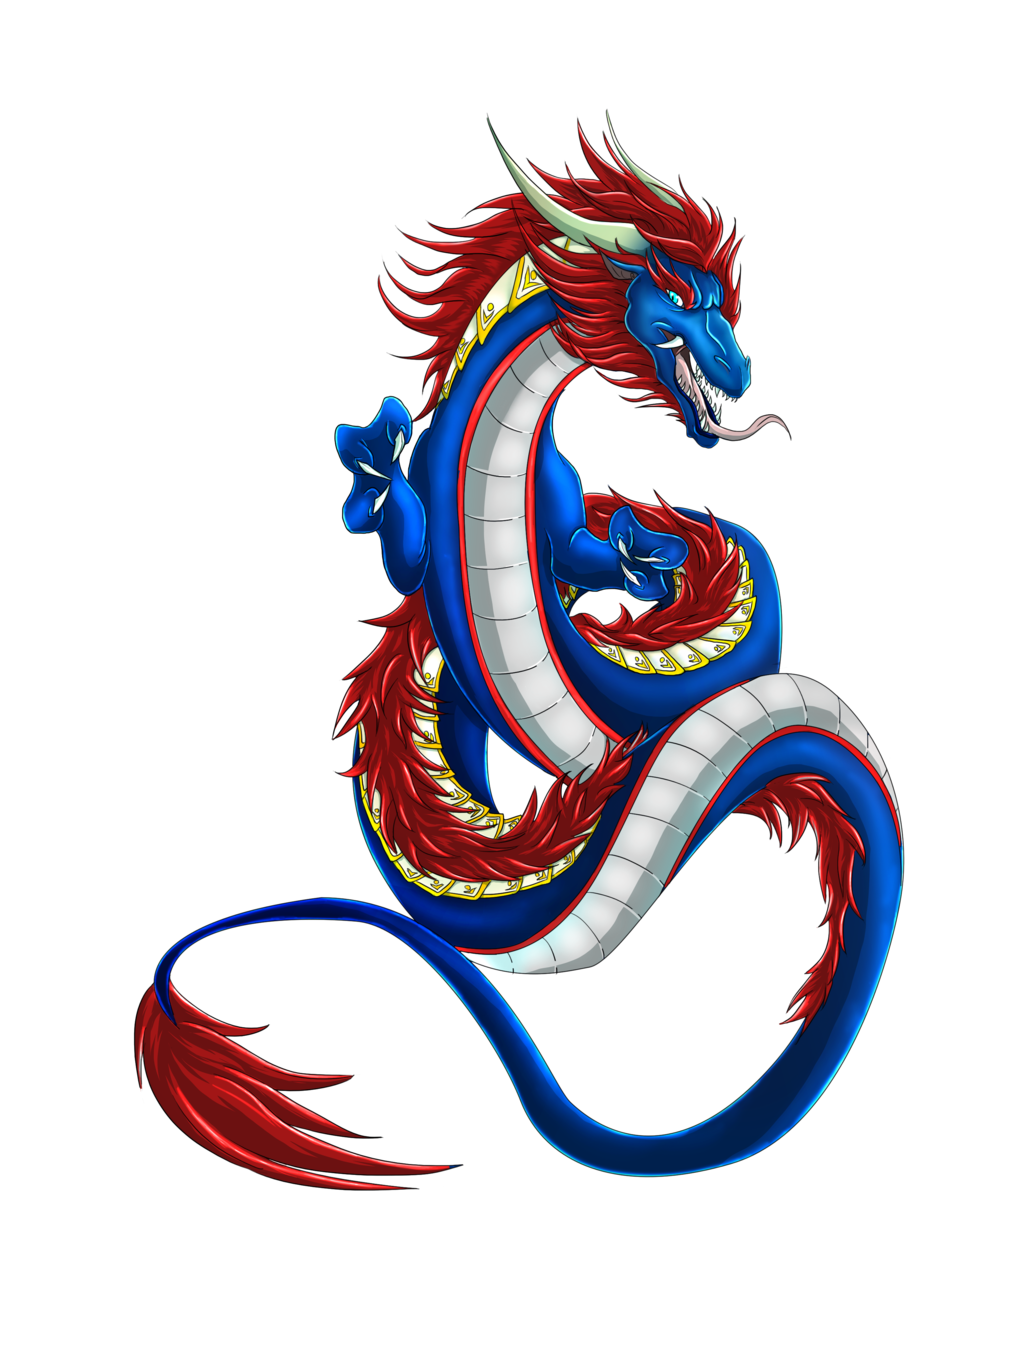 Chinese zodiac sign mounts. Palace clipart oriental